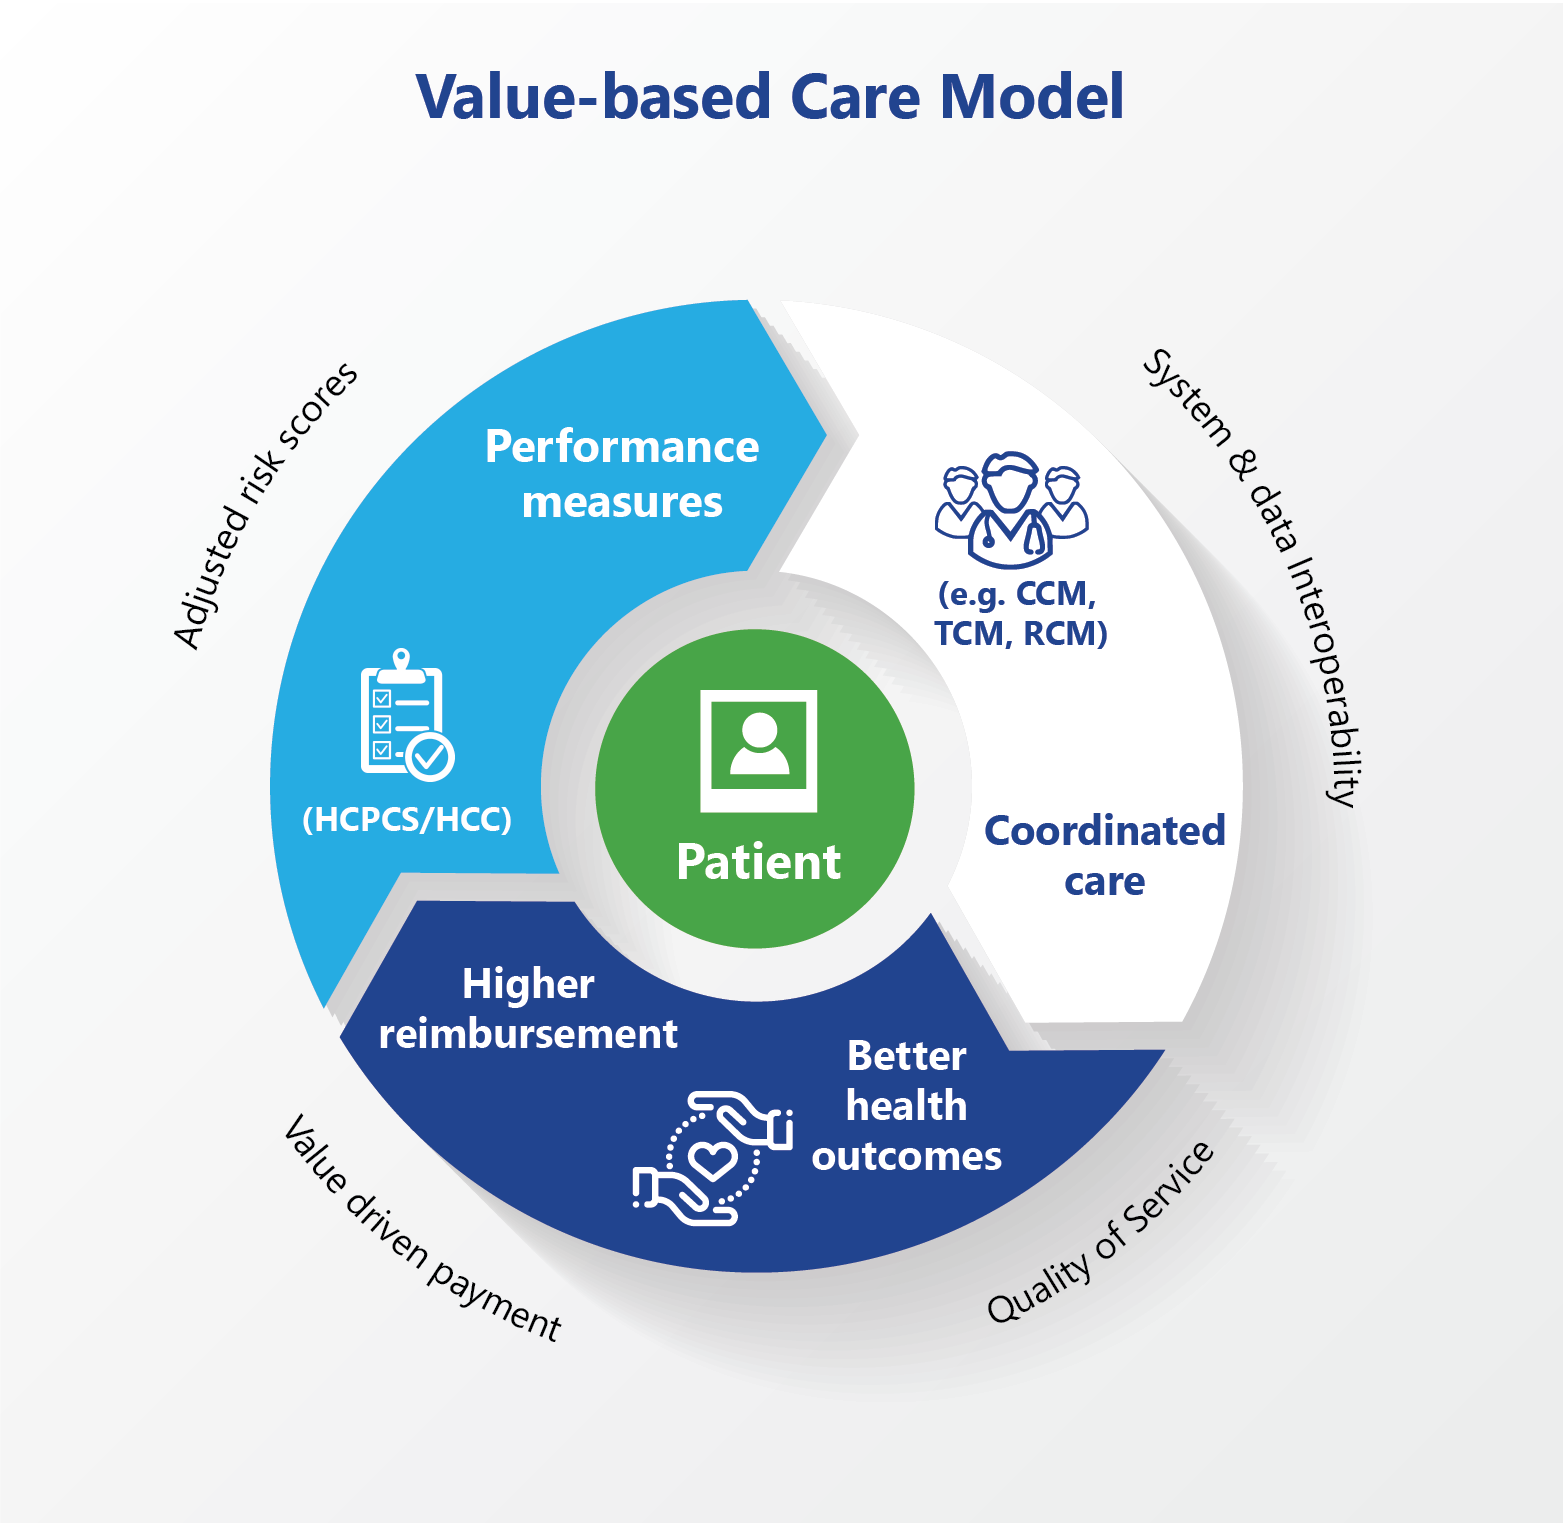 https://acehealthcaresolutions.com/wp-content/uploads/2018/09/Value-based-care-model.png